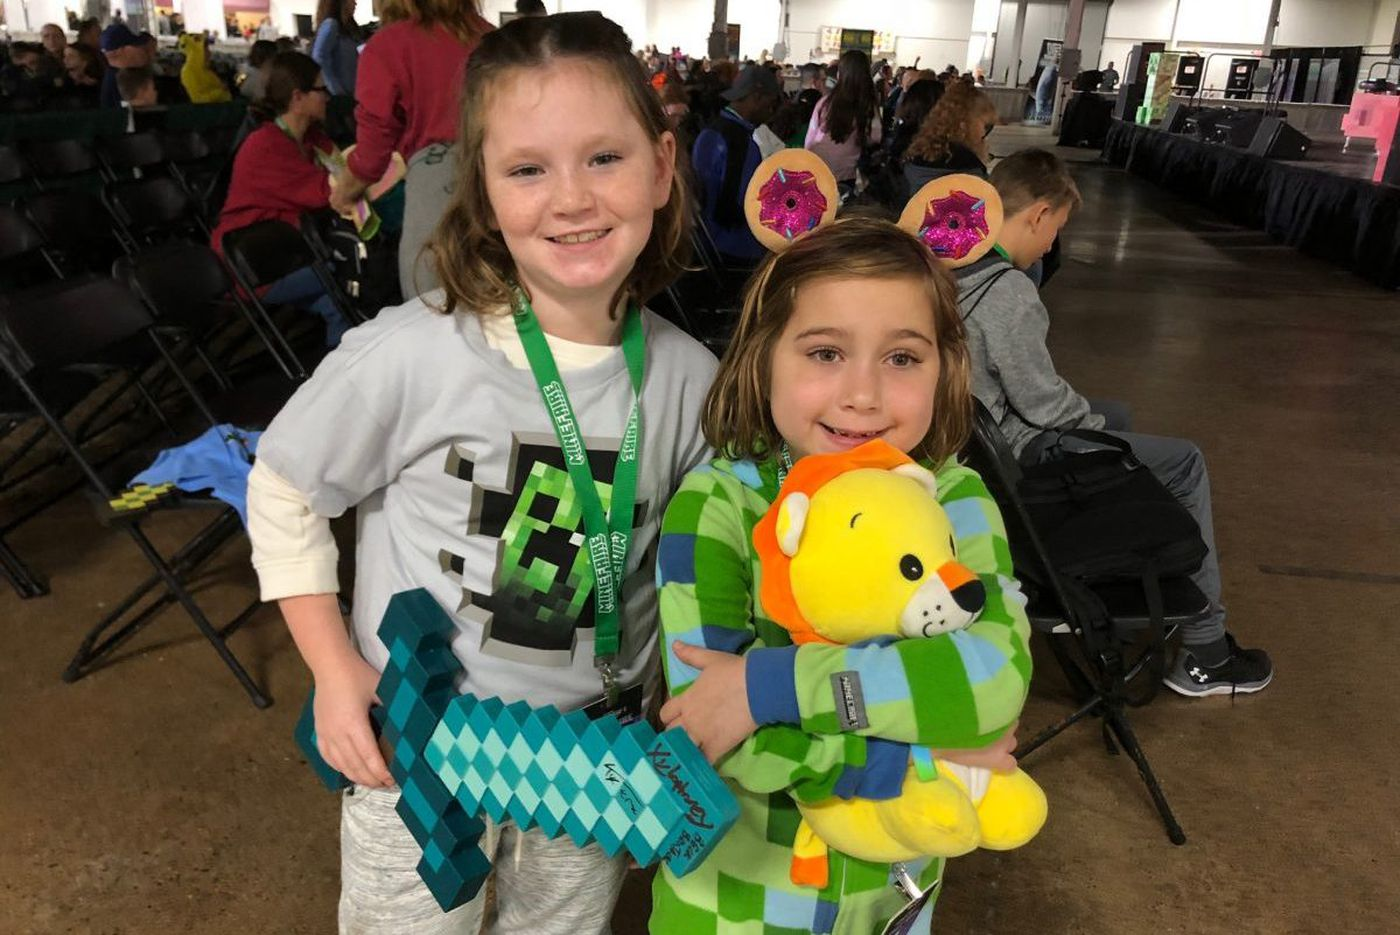 Minefaire isn't just for those obsessed with Minecraft. It's for their parents (and grandparents), too.